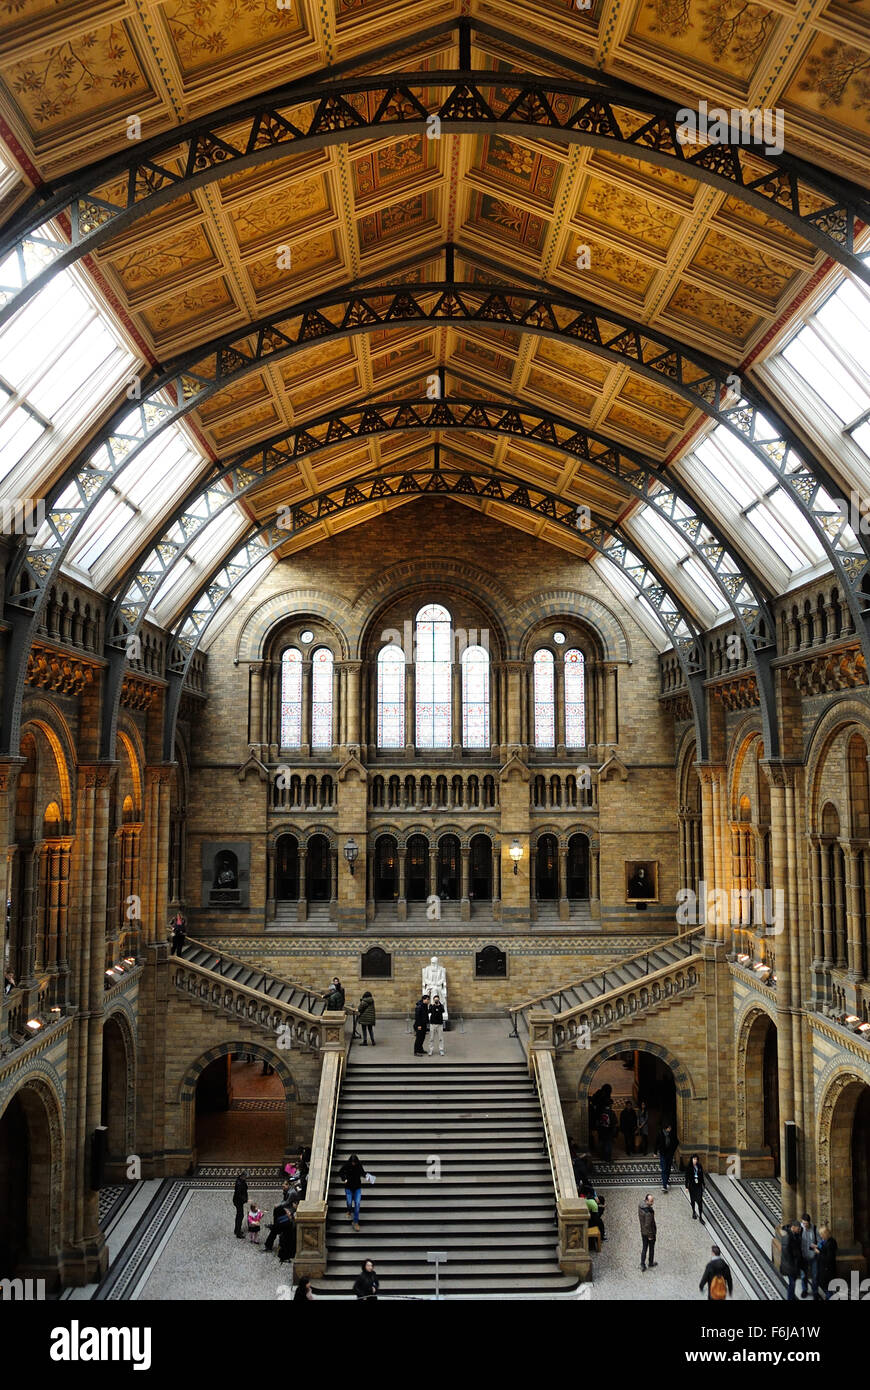 The Hintze Hall in the Natural History Museum, London England UK - Stock Image